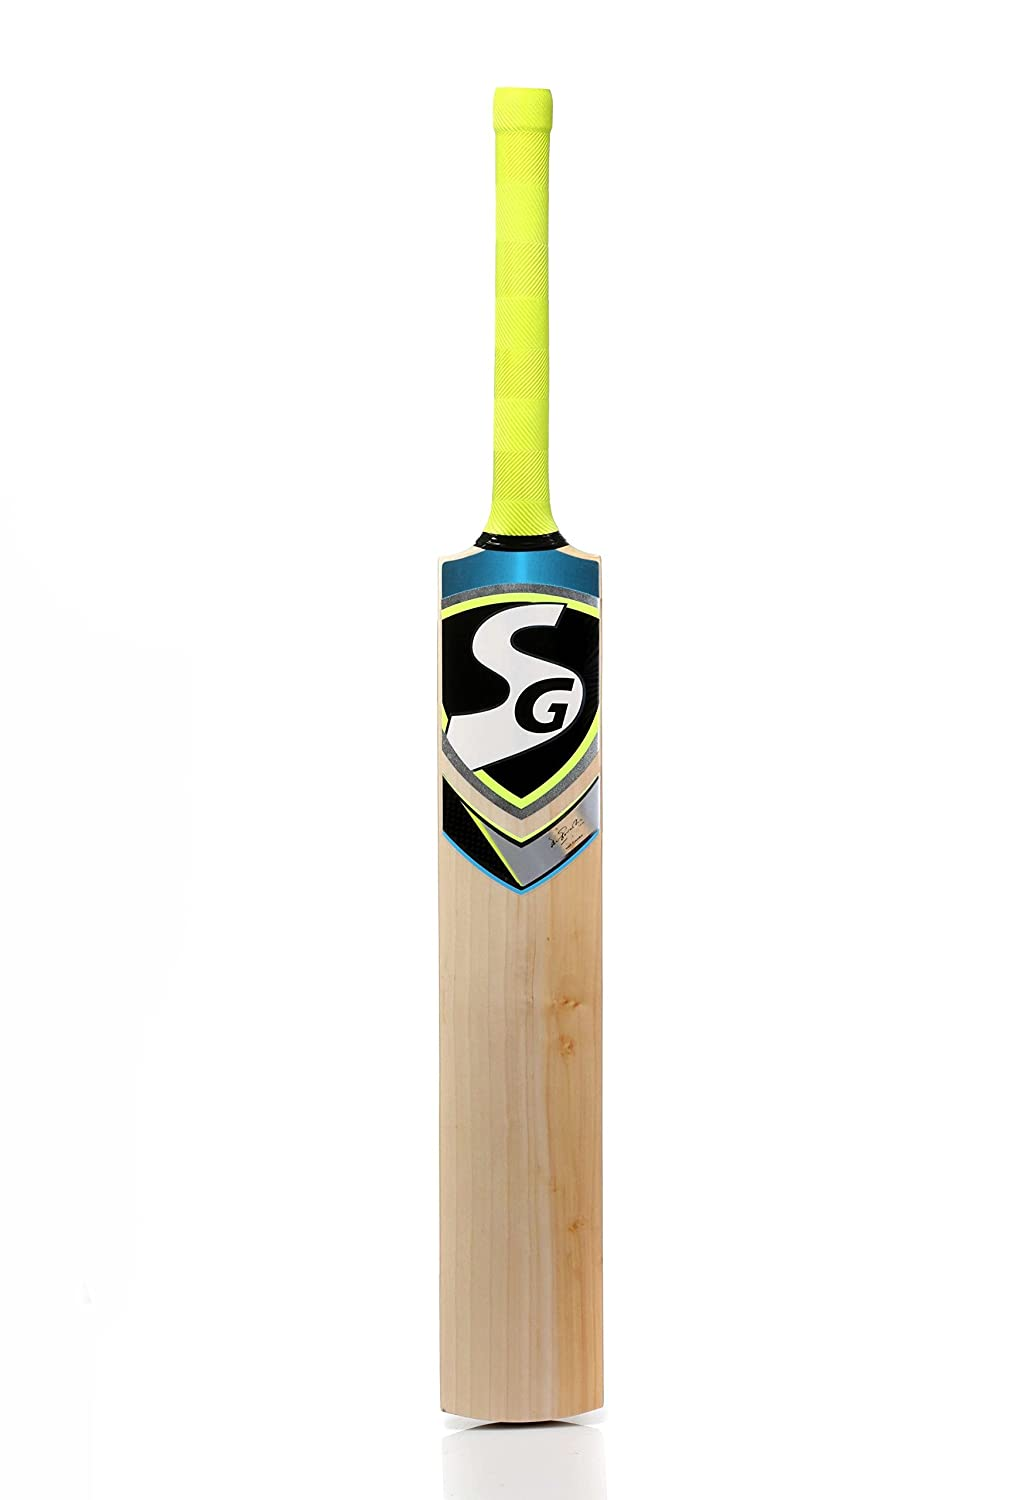 SG Cobra Xtreme English Willow Cricket Bat, Short Handle (Multicolor)